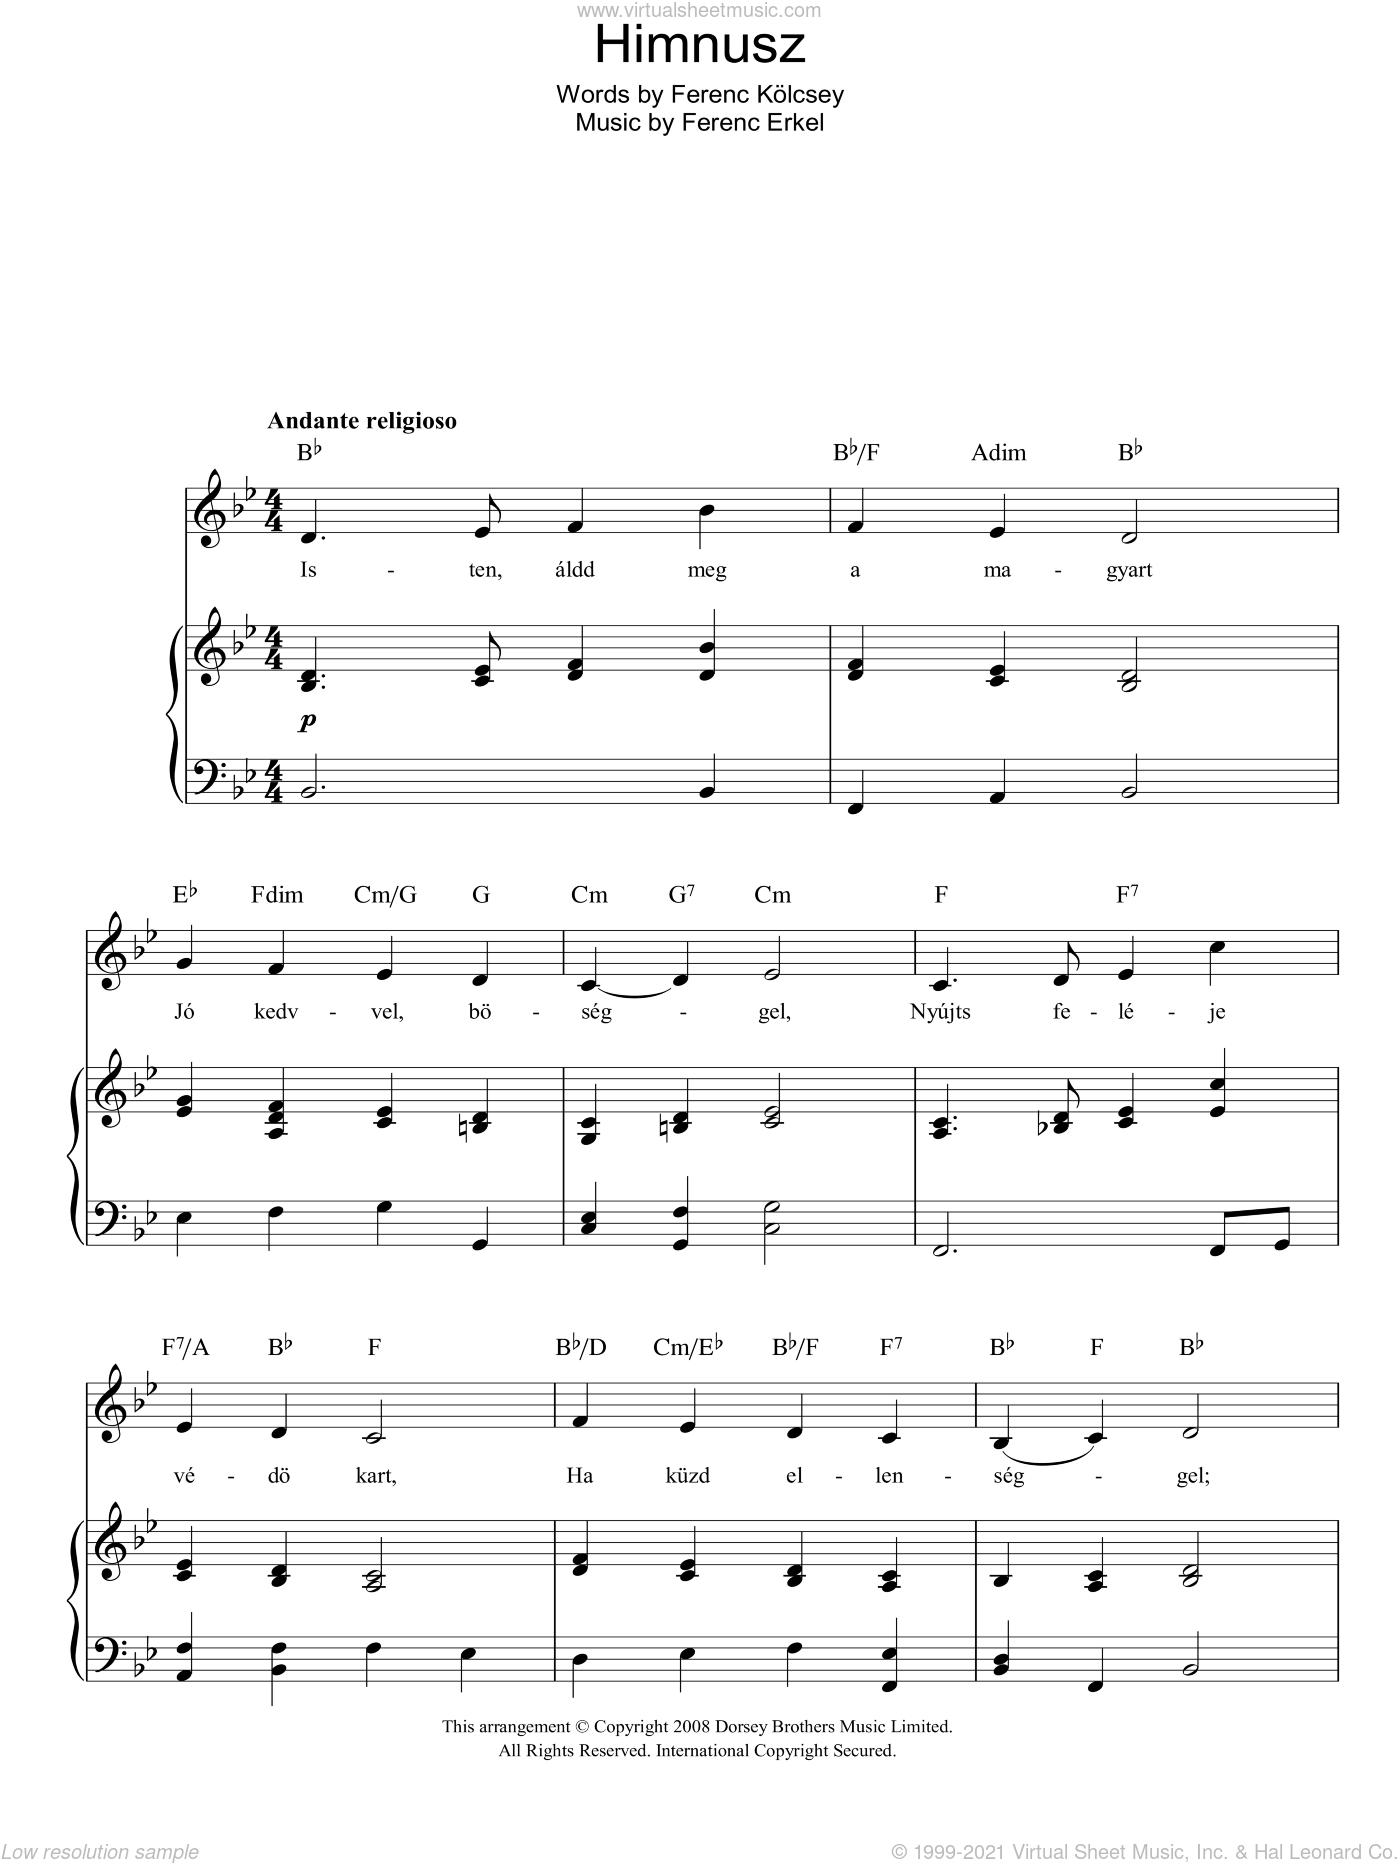 Himnusz (Hungarian National Anthem) sheet music for voice, piano or guitar by Ferenc Erkel and Ferenc Kolcsey, intermediate skill level